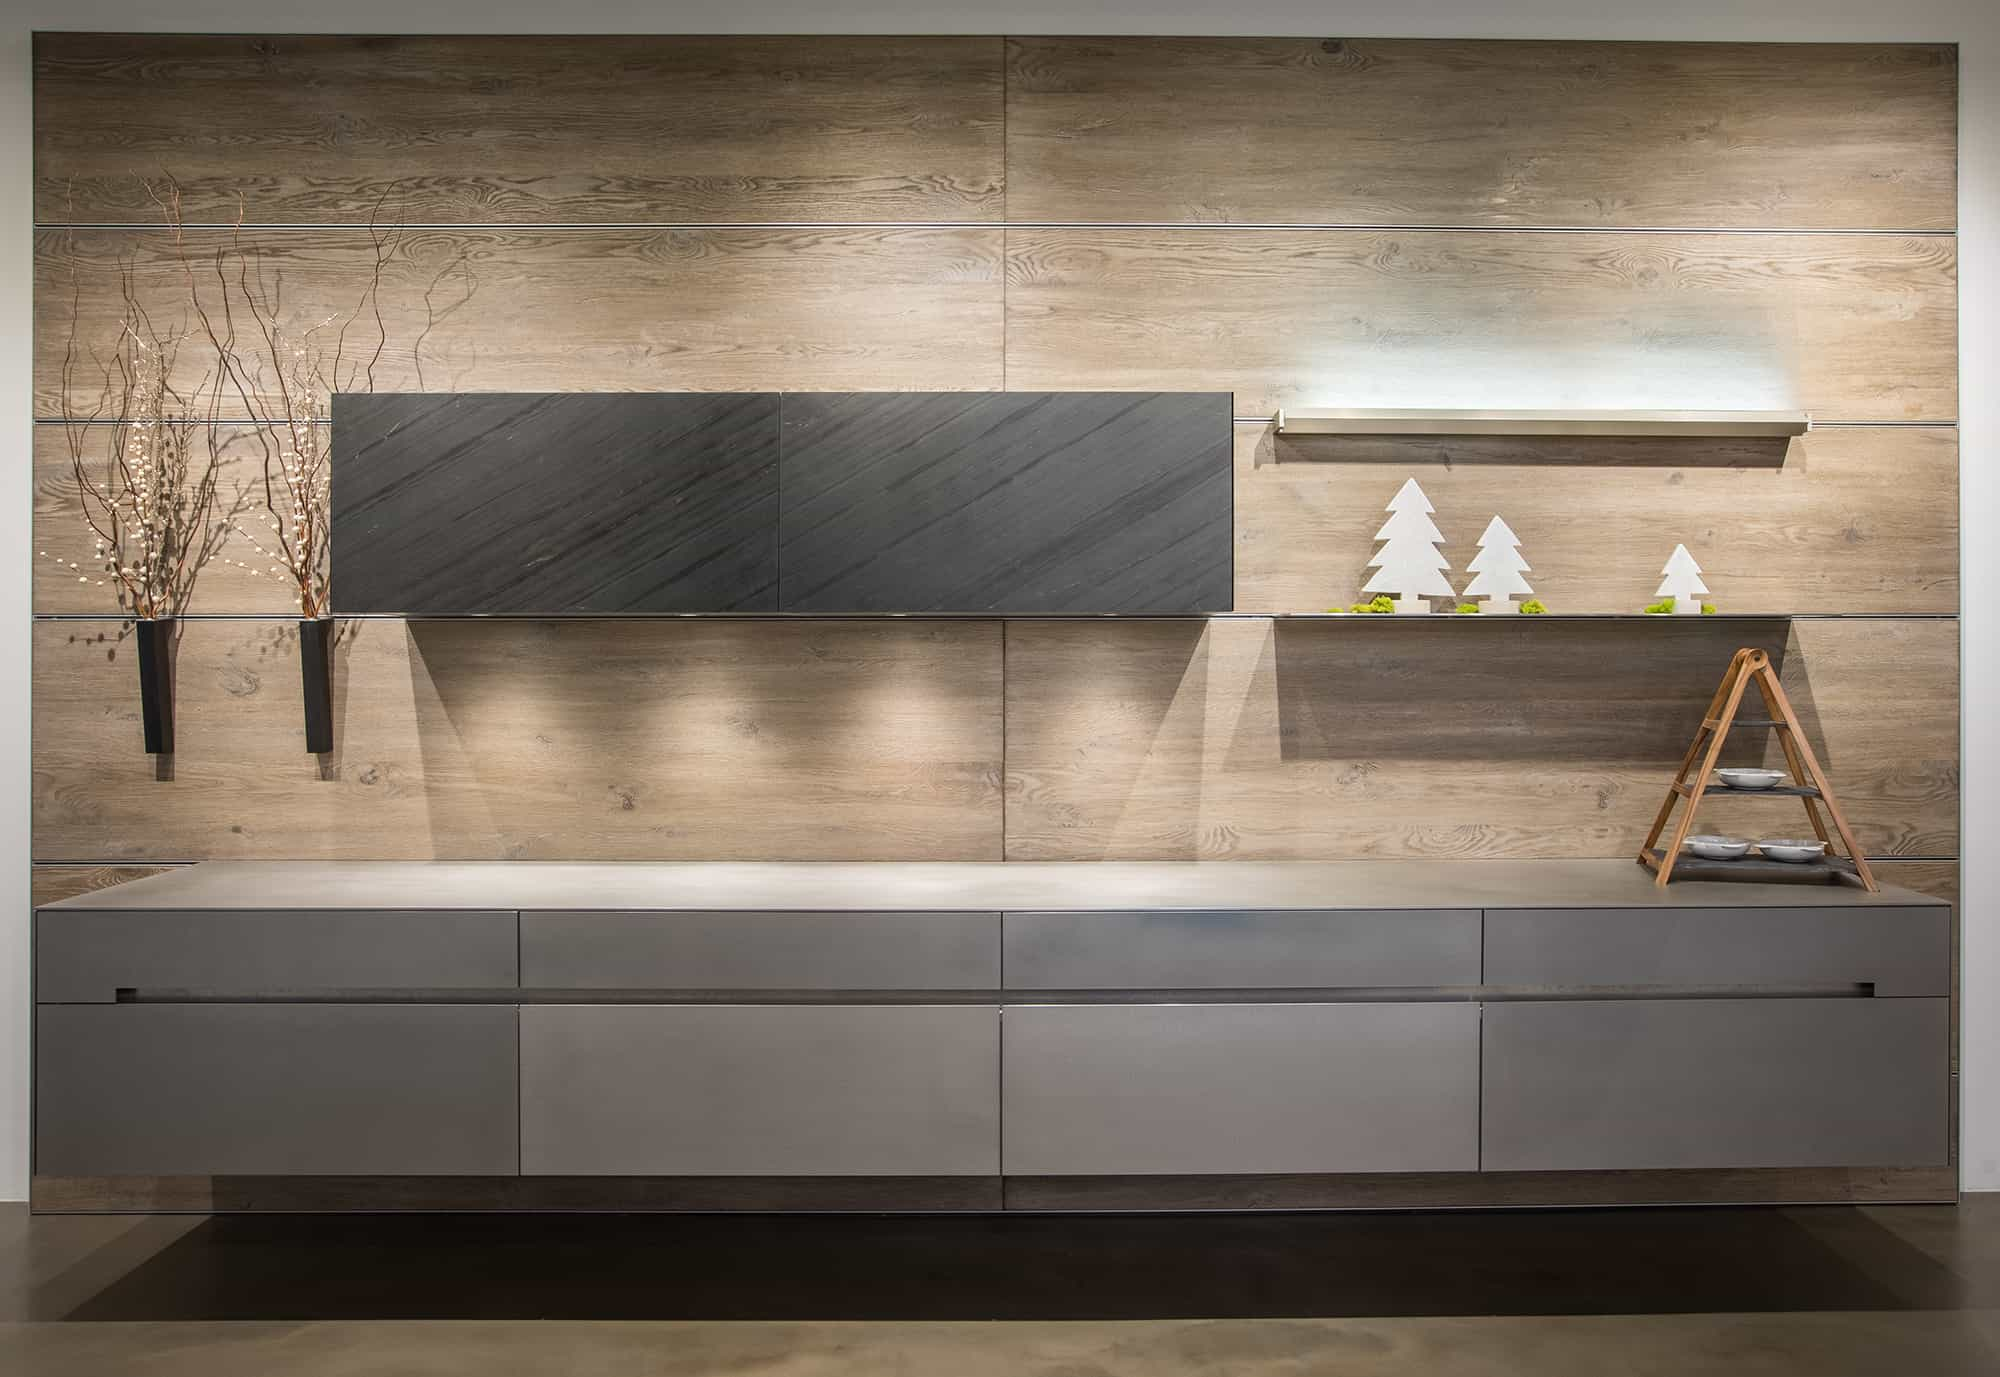 suspended credenza in Vancouver Brushed Oak Silverbrown   SilverTouch Stainless Steel finish with Phyllite Black Leather quartz